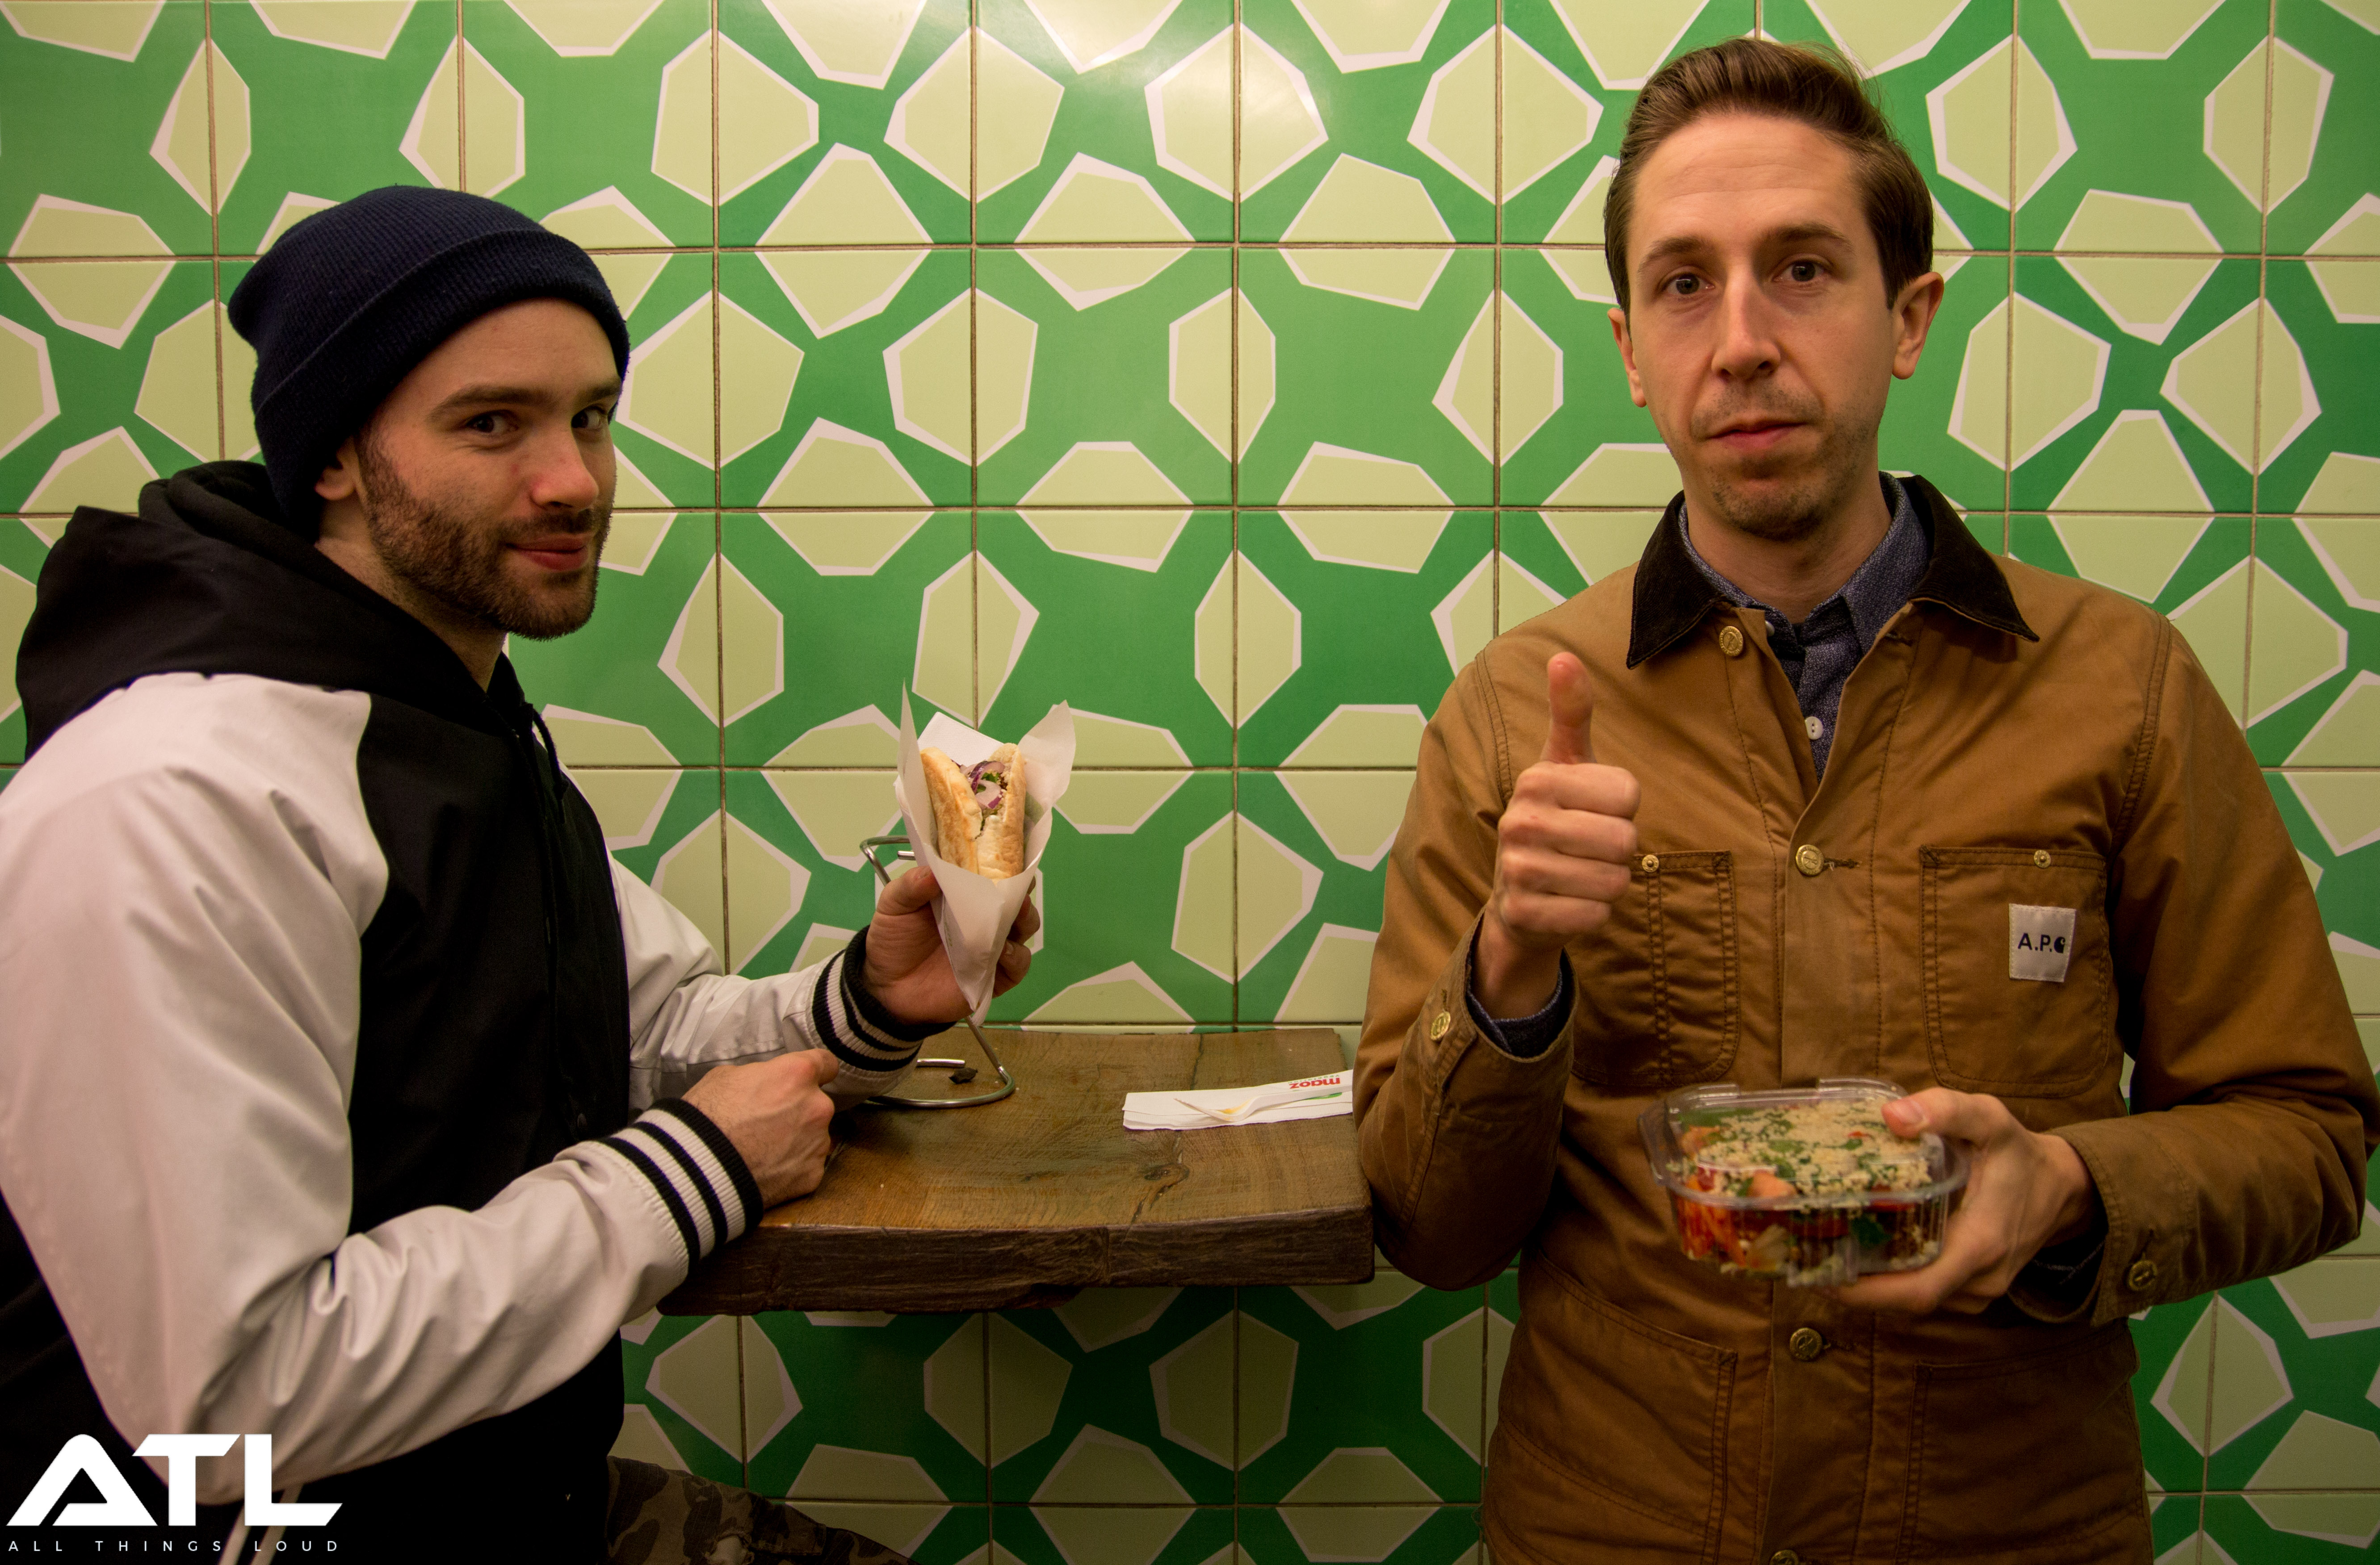 17:17. Tech guy Spencer and Silverstein drummer Paul Koehler show off their Falafels.